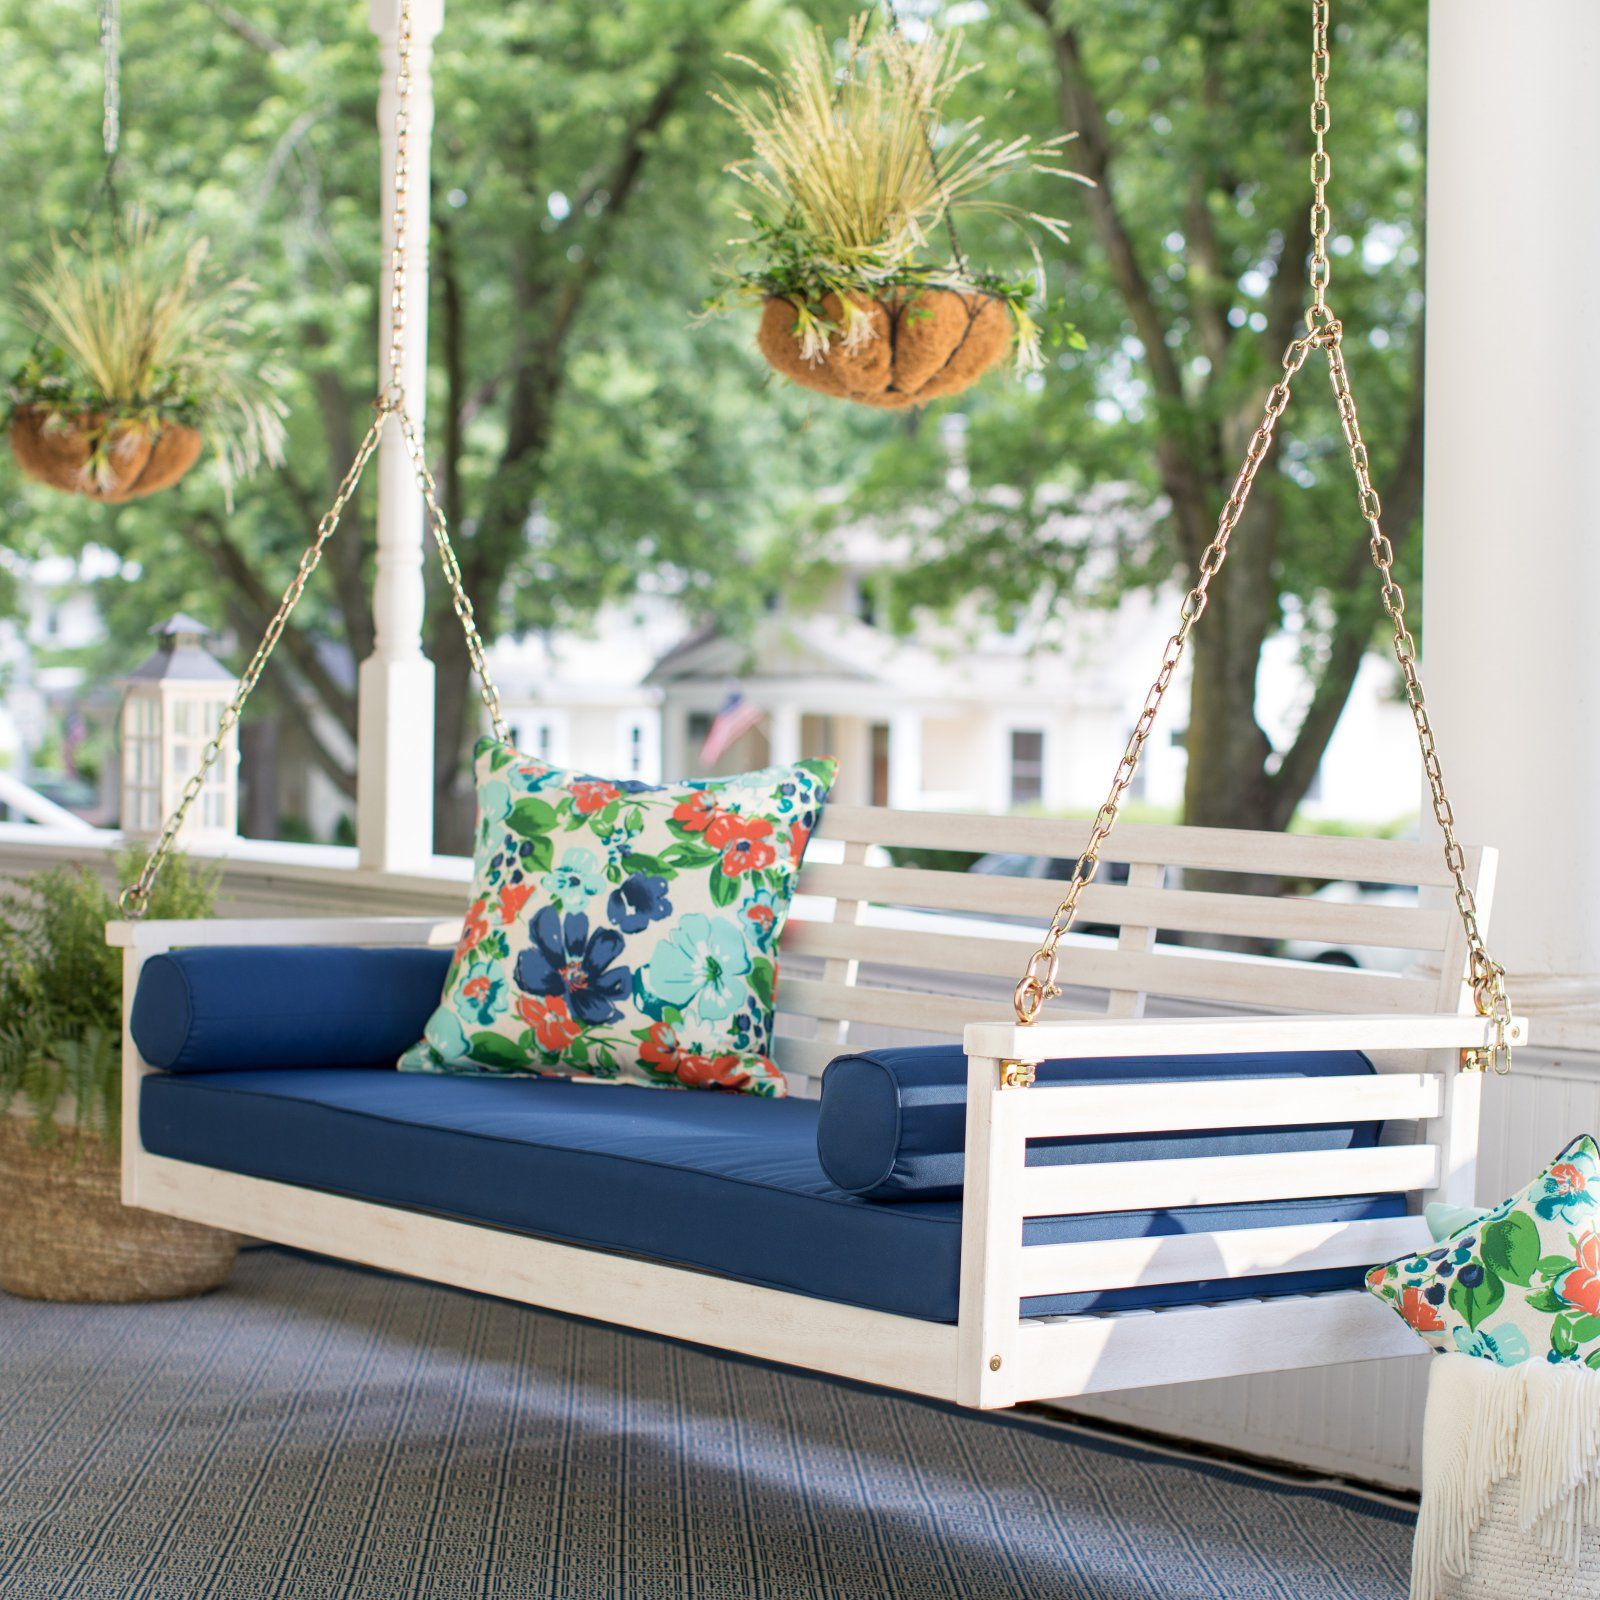 Belham Living Brighton Beach Deep Seating Porch Swing Bed With Cushion Porch Swing Patio Swing Diy Porch